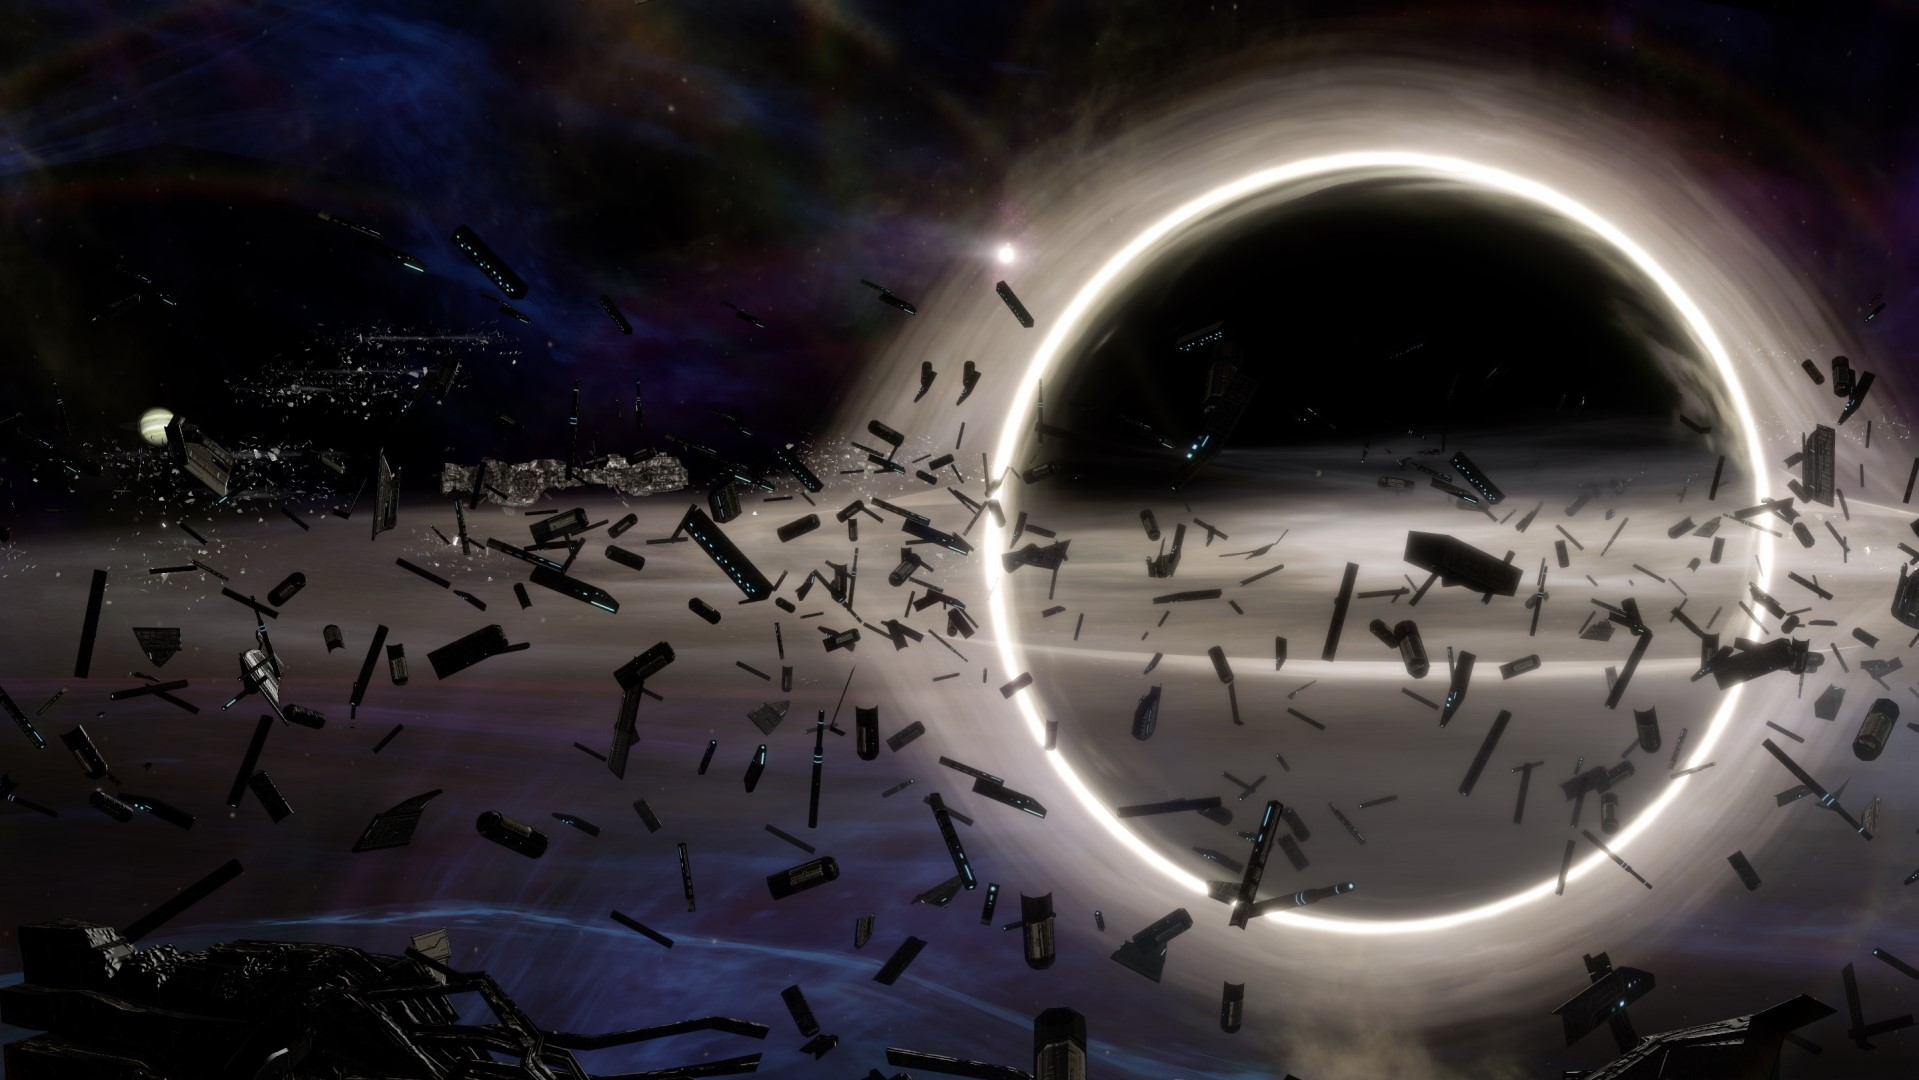 A Stellaris short film from the creator of This Is Battlefield is coming in June